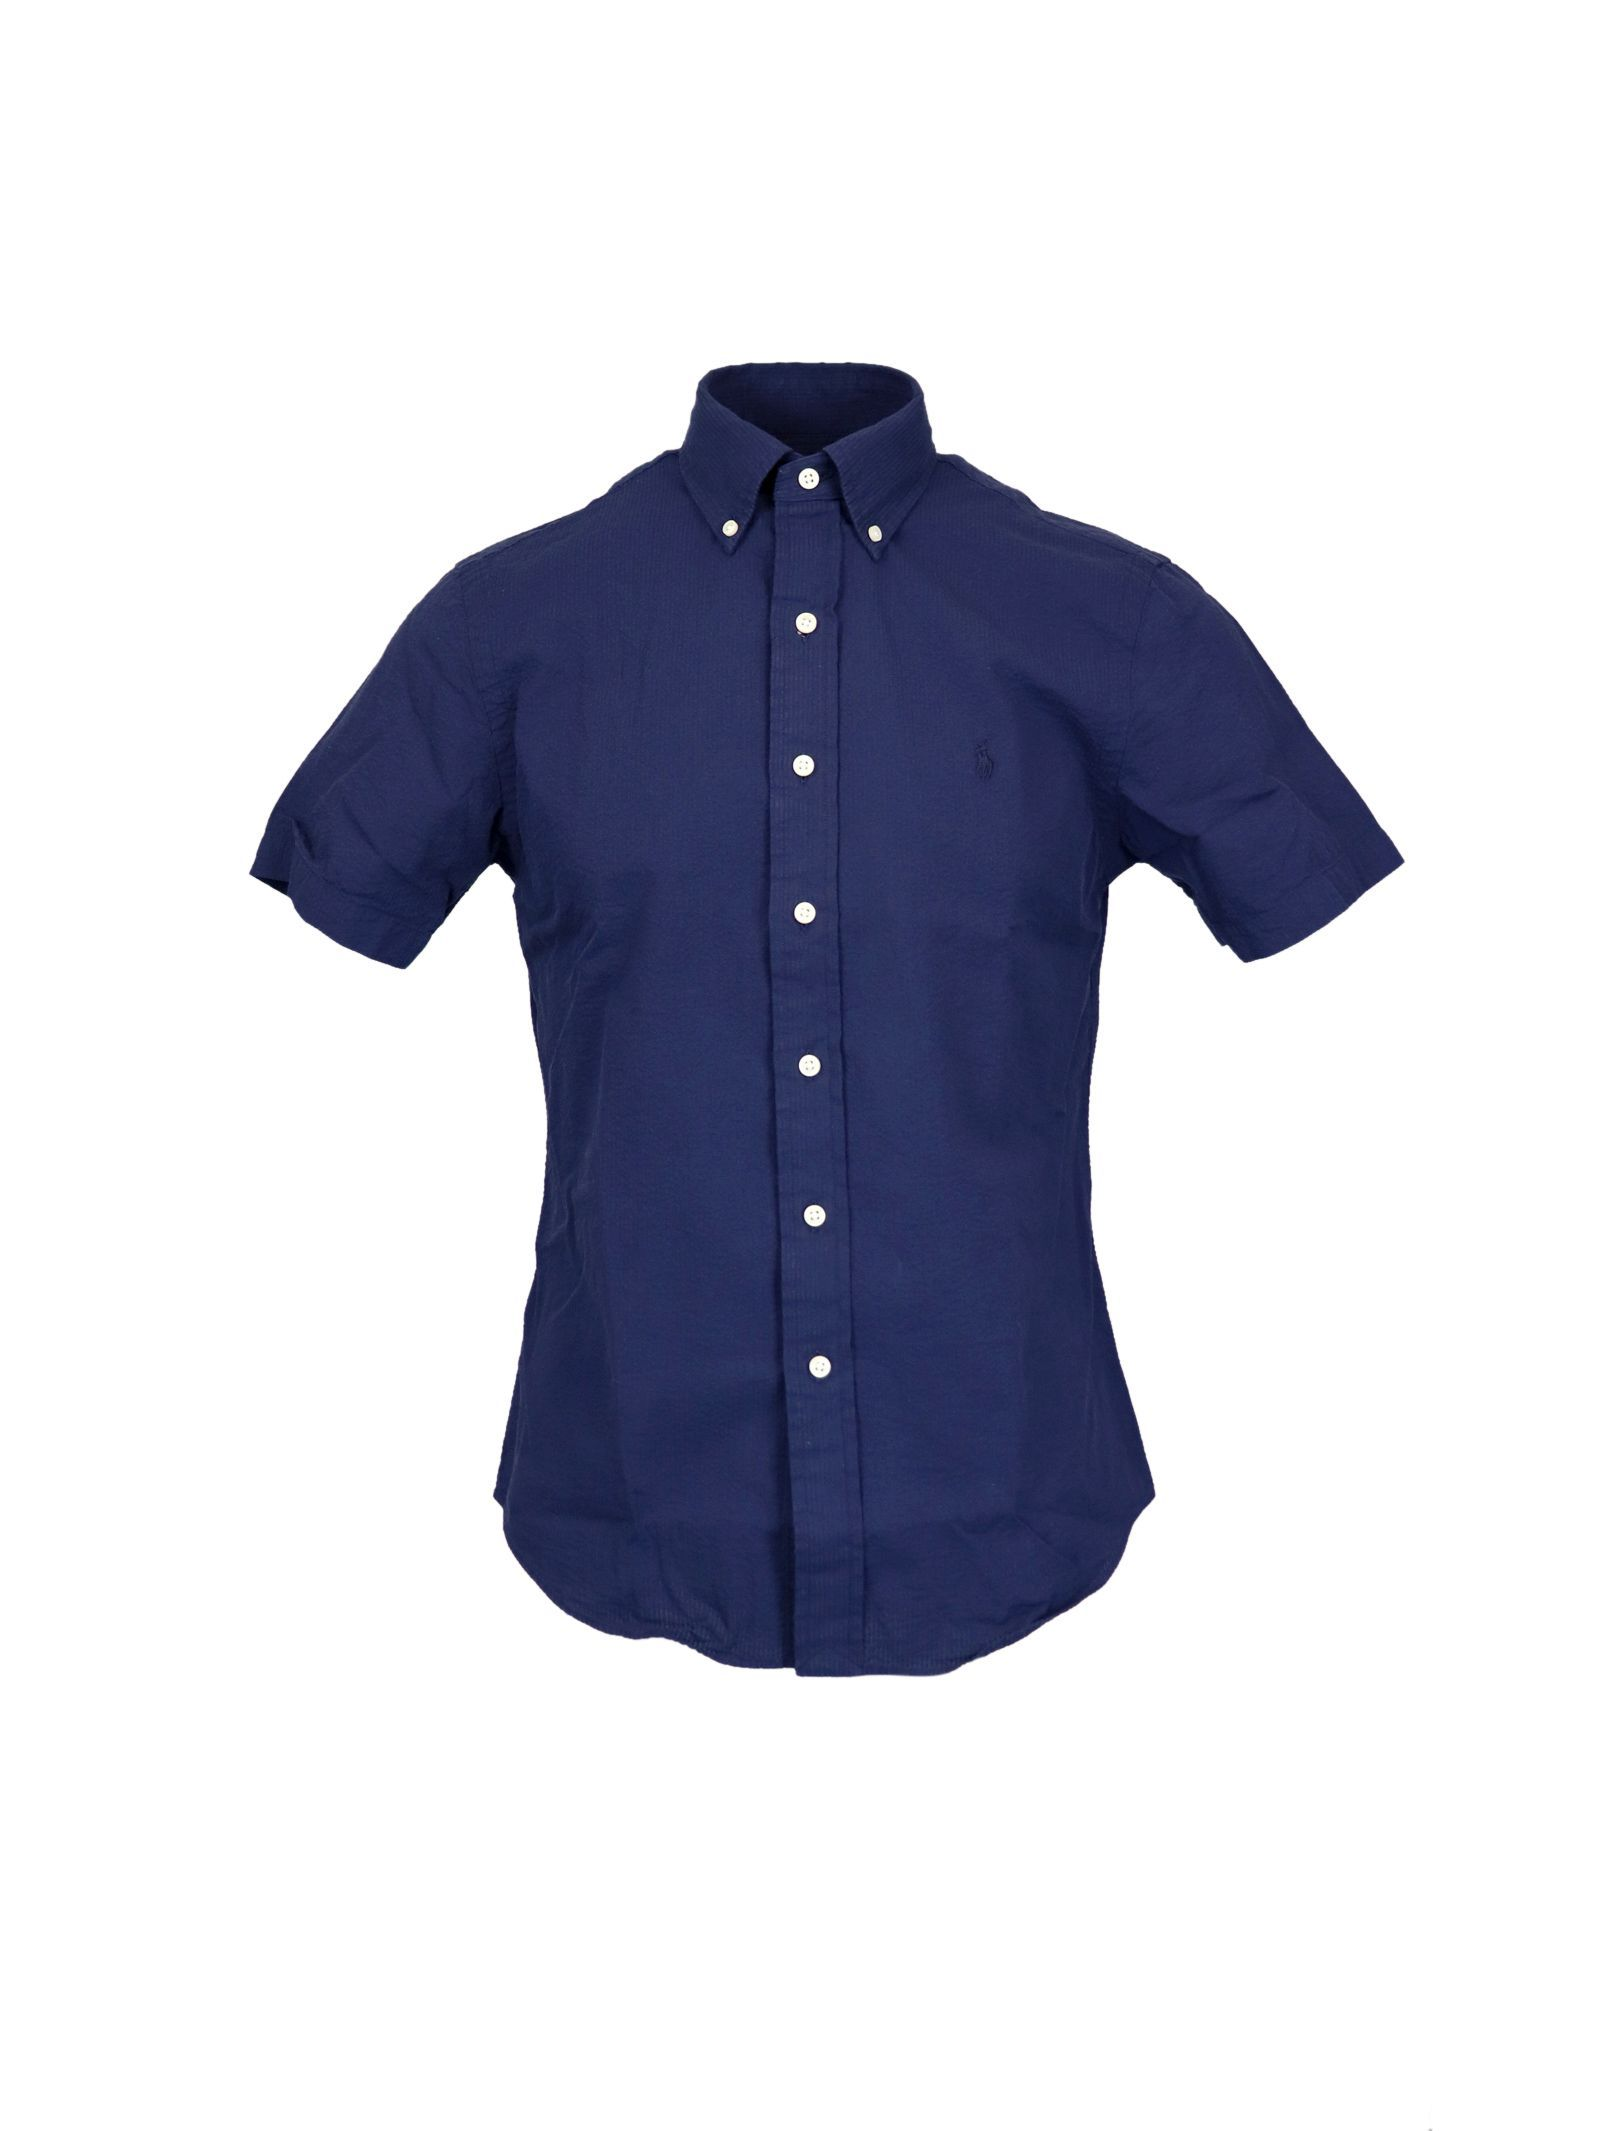 RALPH LAUREN MEN'S 710795250002 BLUE COTTON SHIRT